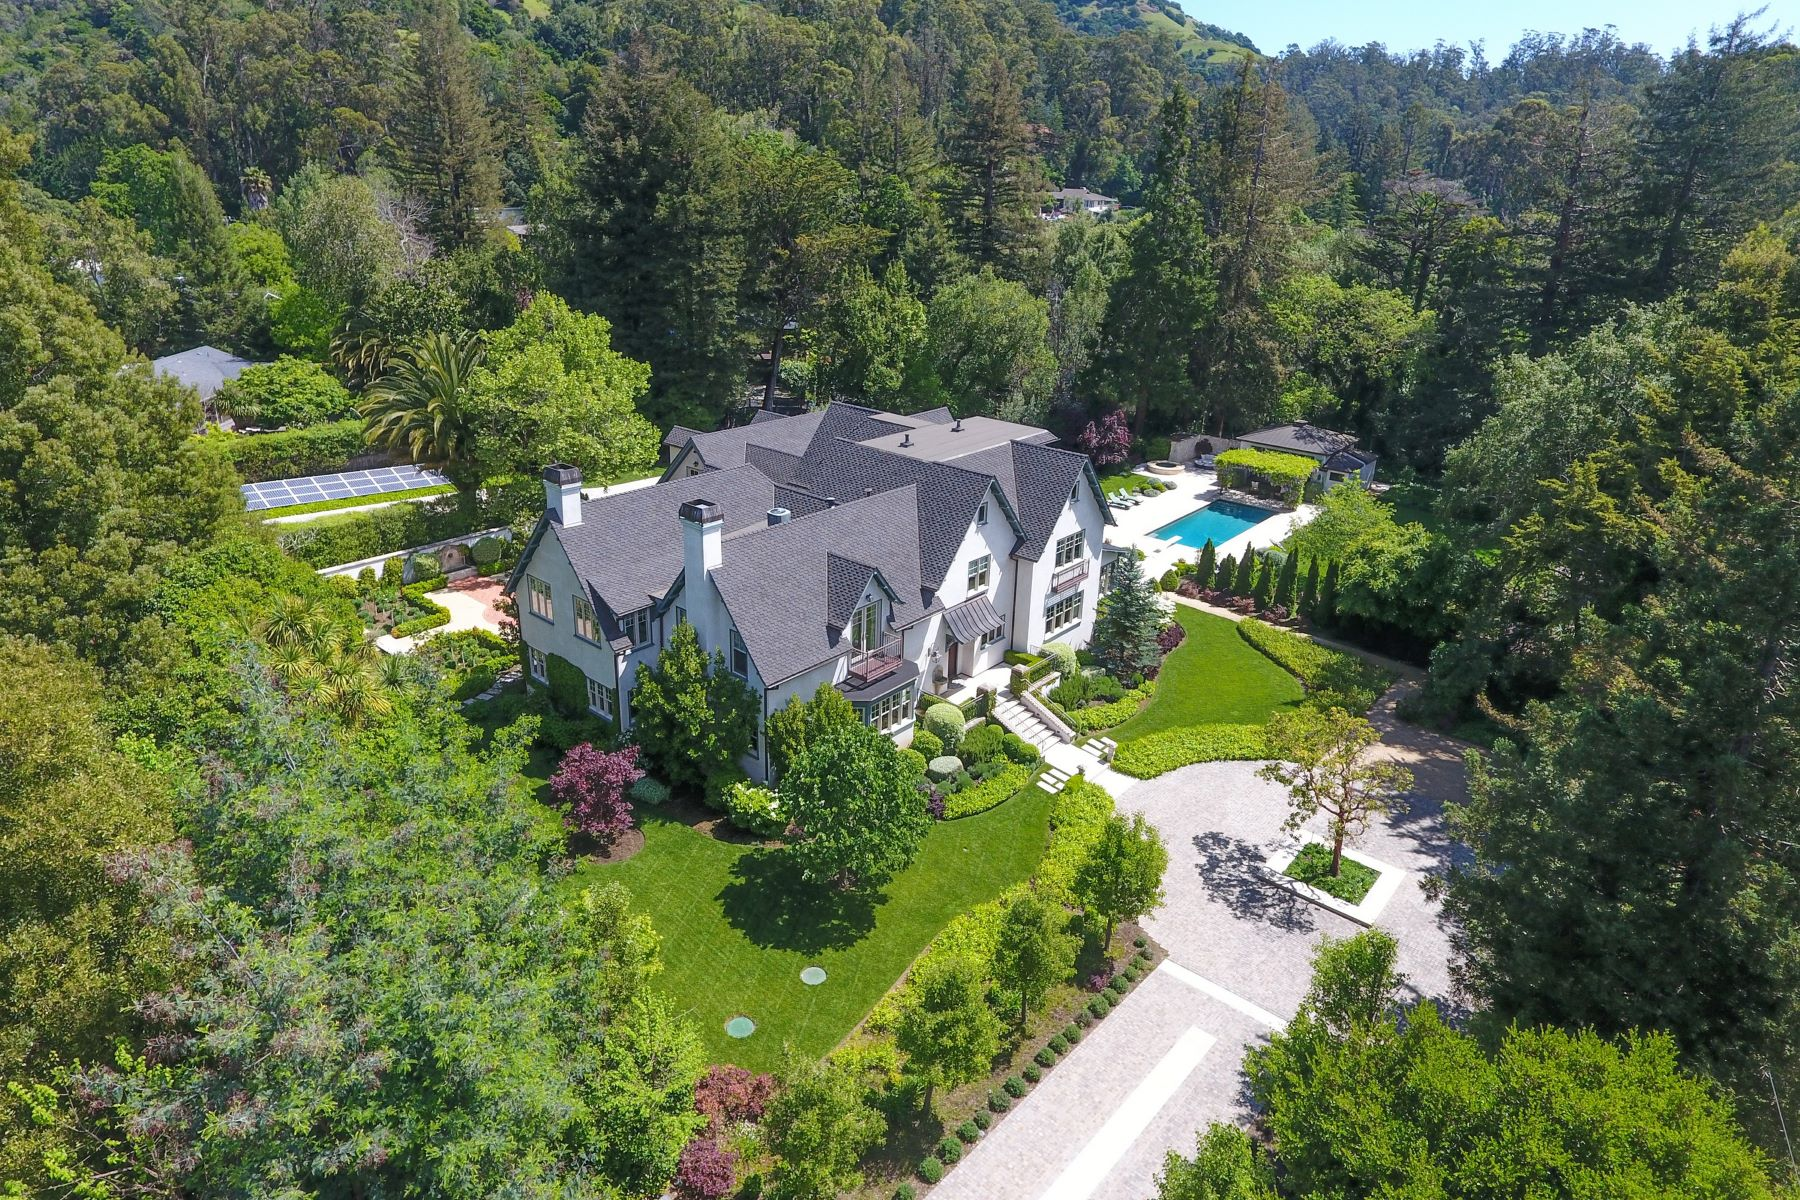 Single Family Home for Sale at Historic Grandeur Meets Contemporary Elegance 120 Mountain View Ave San Rafael, California 94901 United States